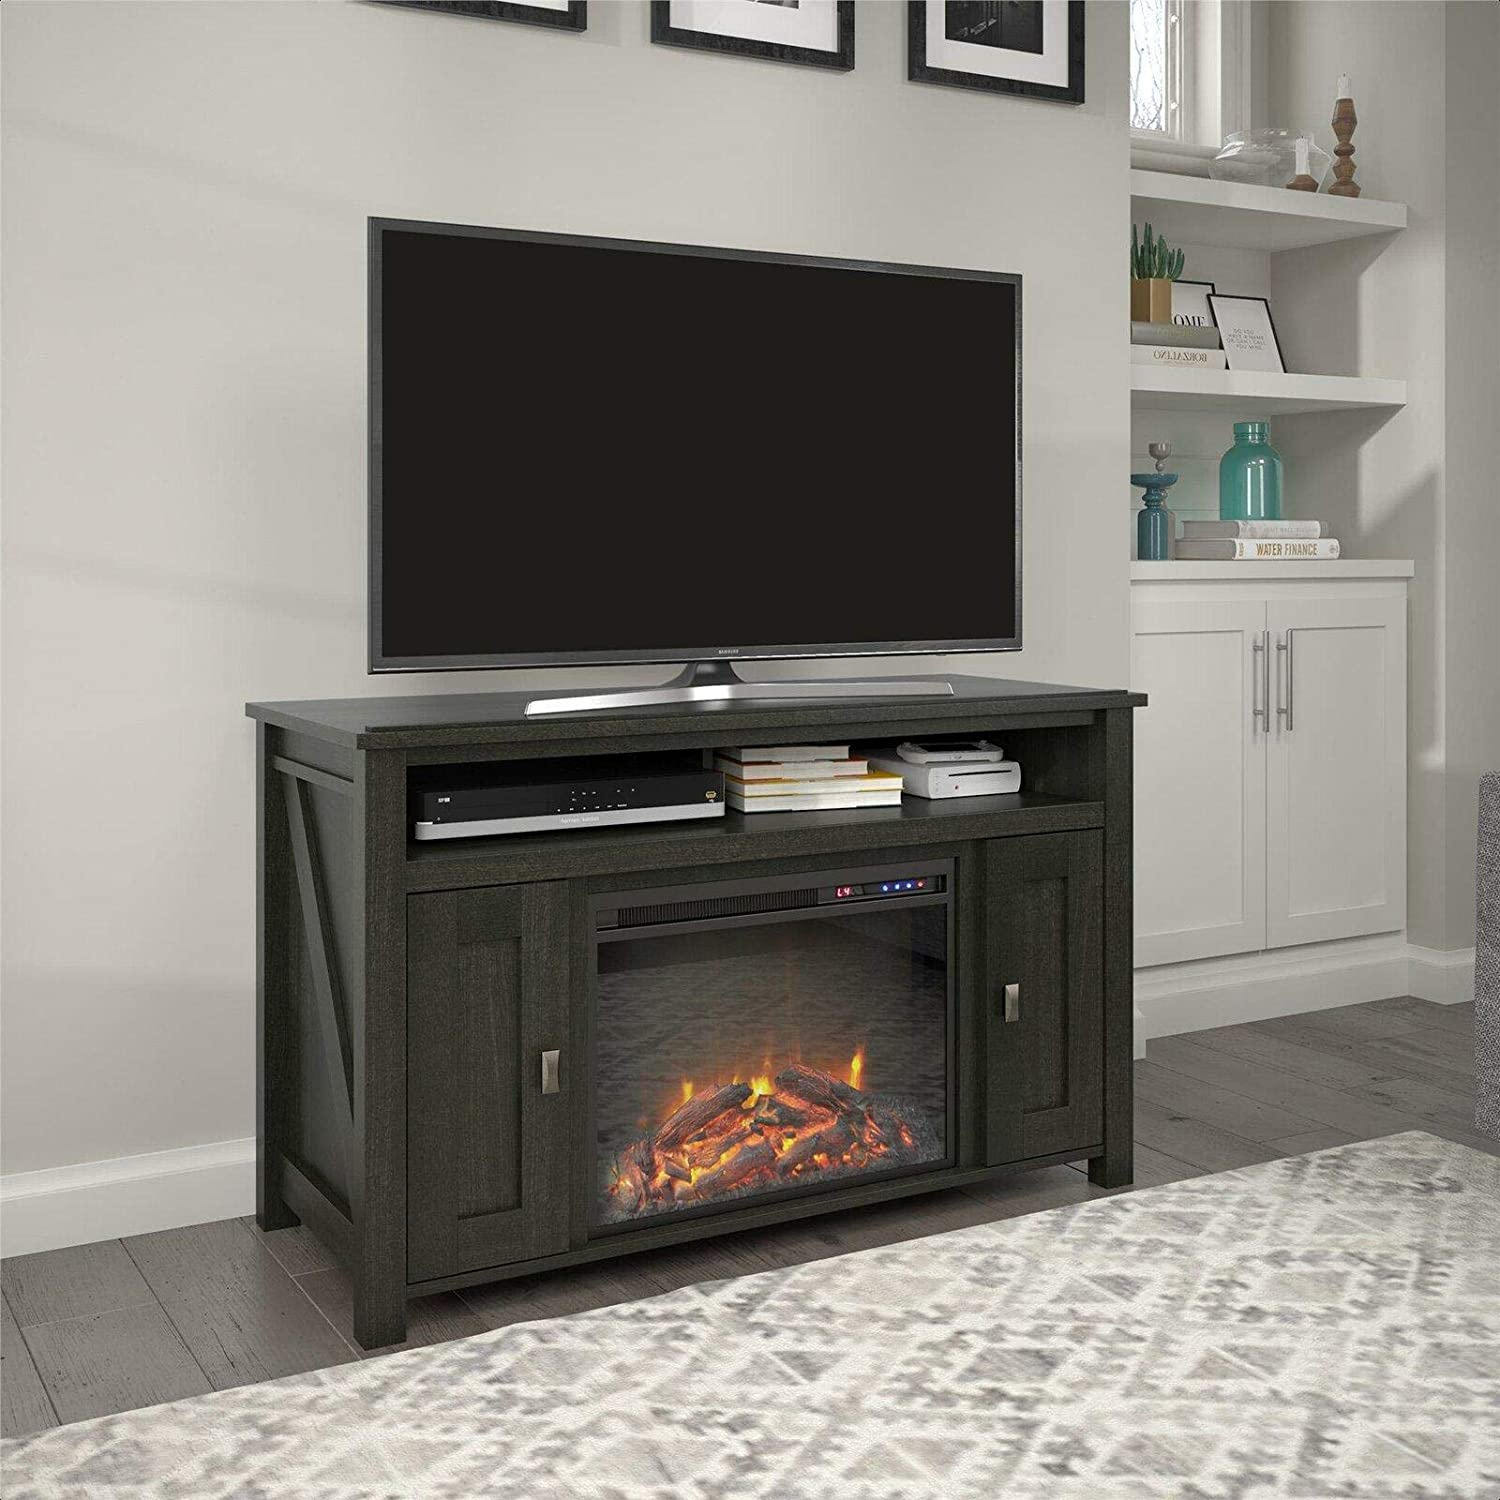 Tv Stand For Tvs Up To 50 With Electric Fireplace Included Home Audio Theater